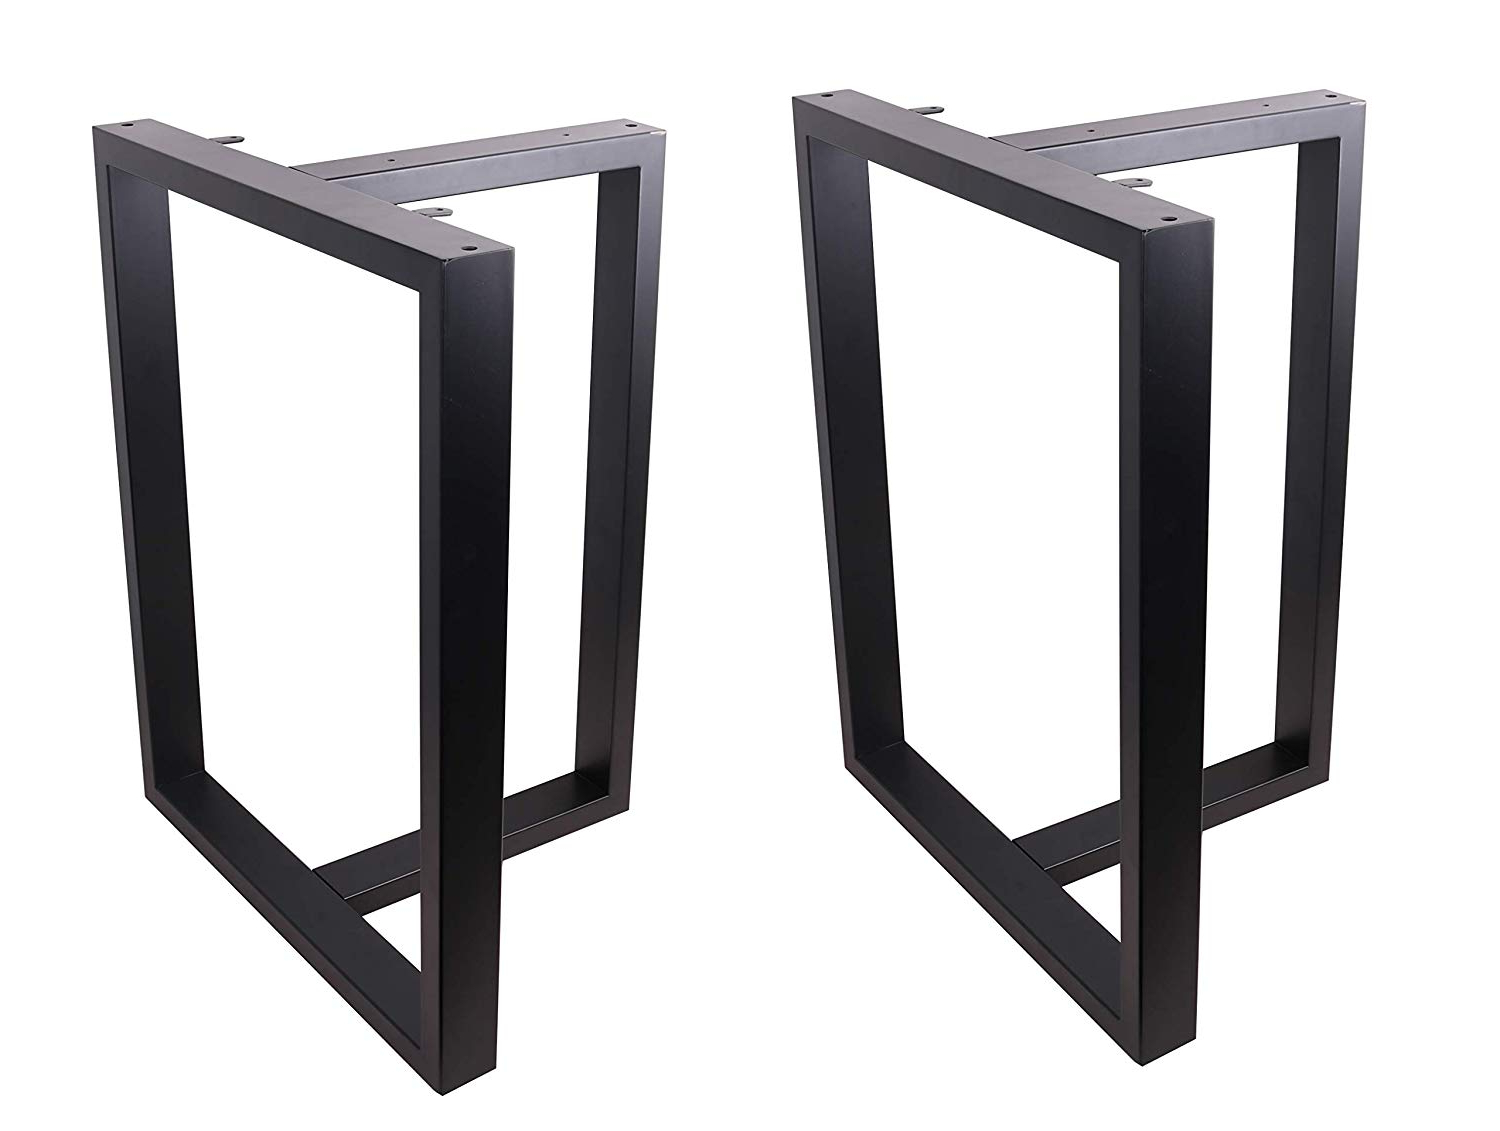 """Favorite Eclv 28"""" Dining Table Legs, T Shaped Steel Table Legs, Office Table  Legs,computer Desk Legs,industrial Kitchen Table Legs,set Of 2,black Pertaining To Dining Tables With Black U Legs (View 17 of 30)"""